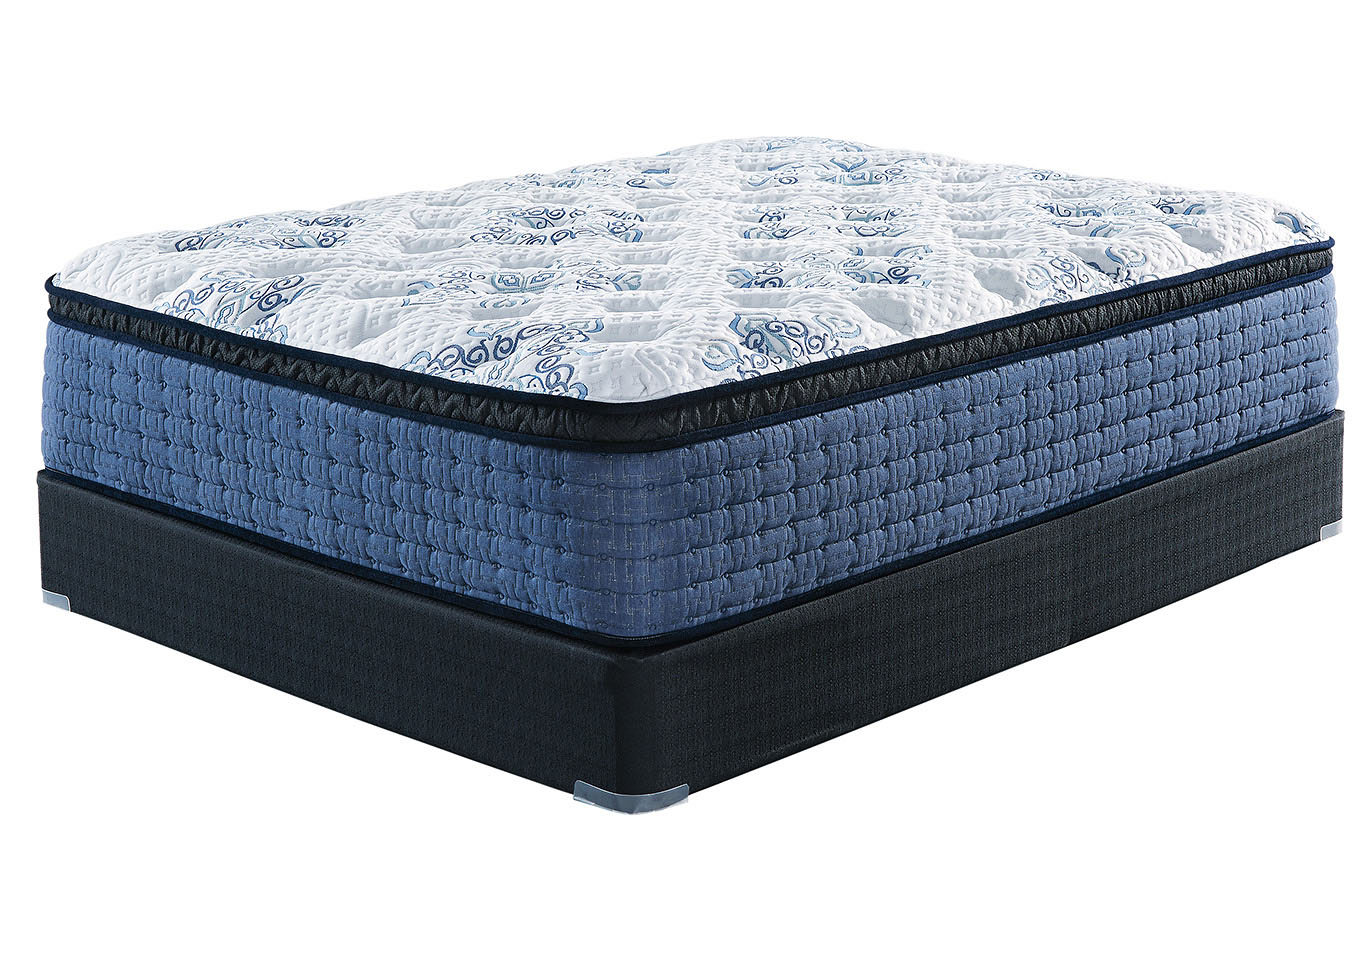 Mt. Dana White Eurotop King Mattress,Sierra Sleep by Ashley